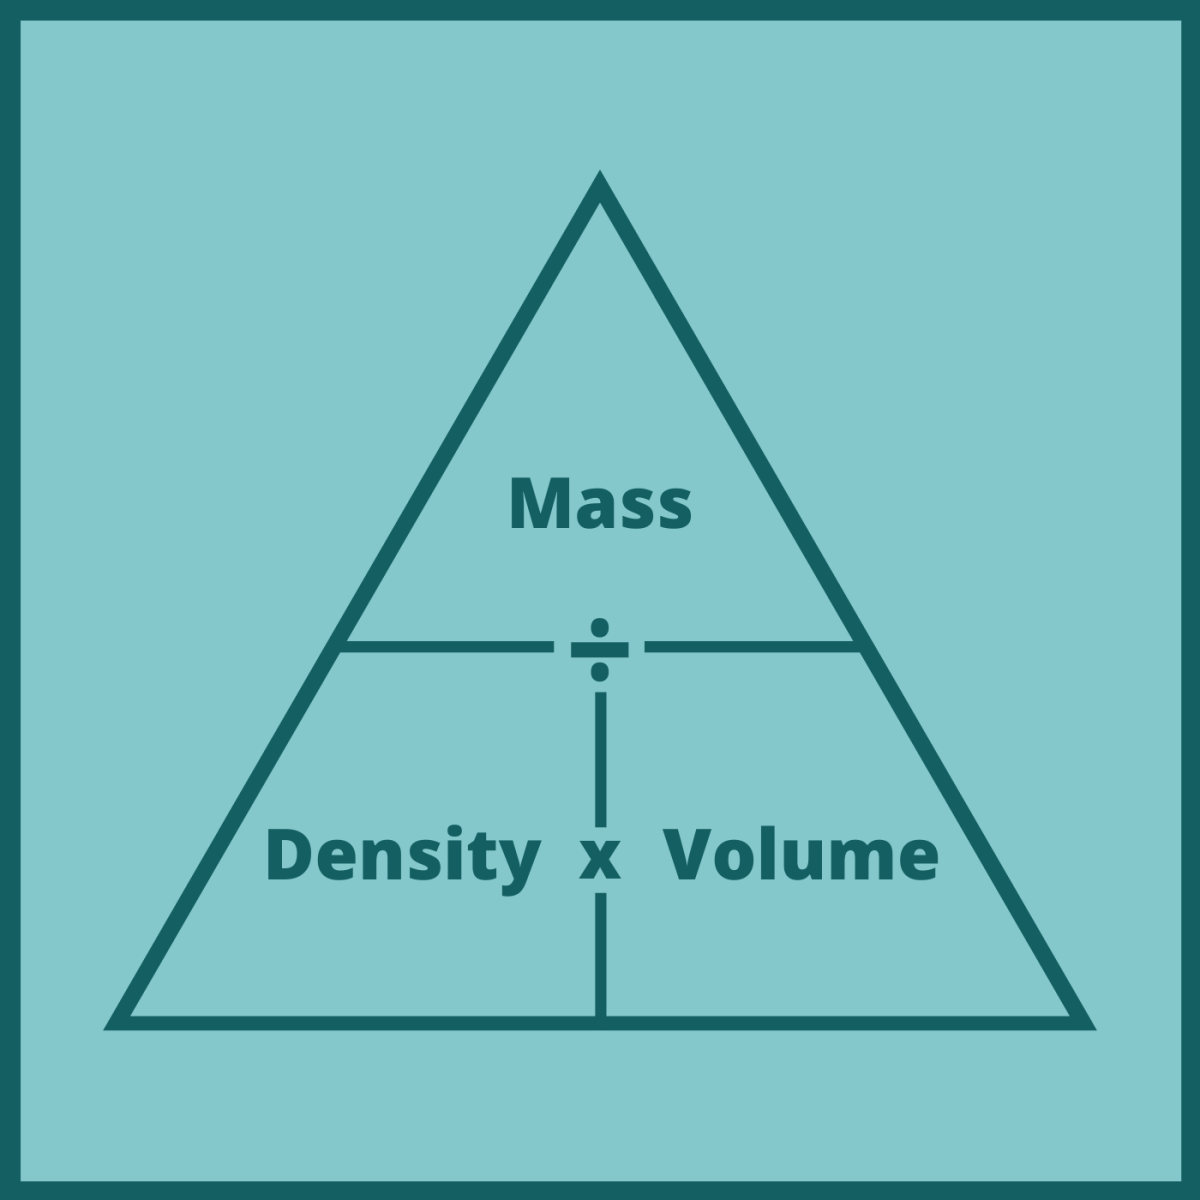 The mass-density-volume triangle helps us visualize the relationships between these three variables.